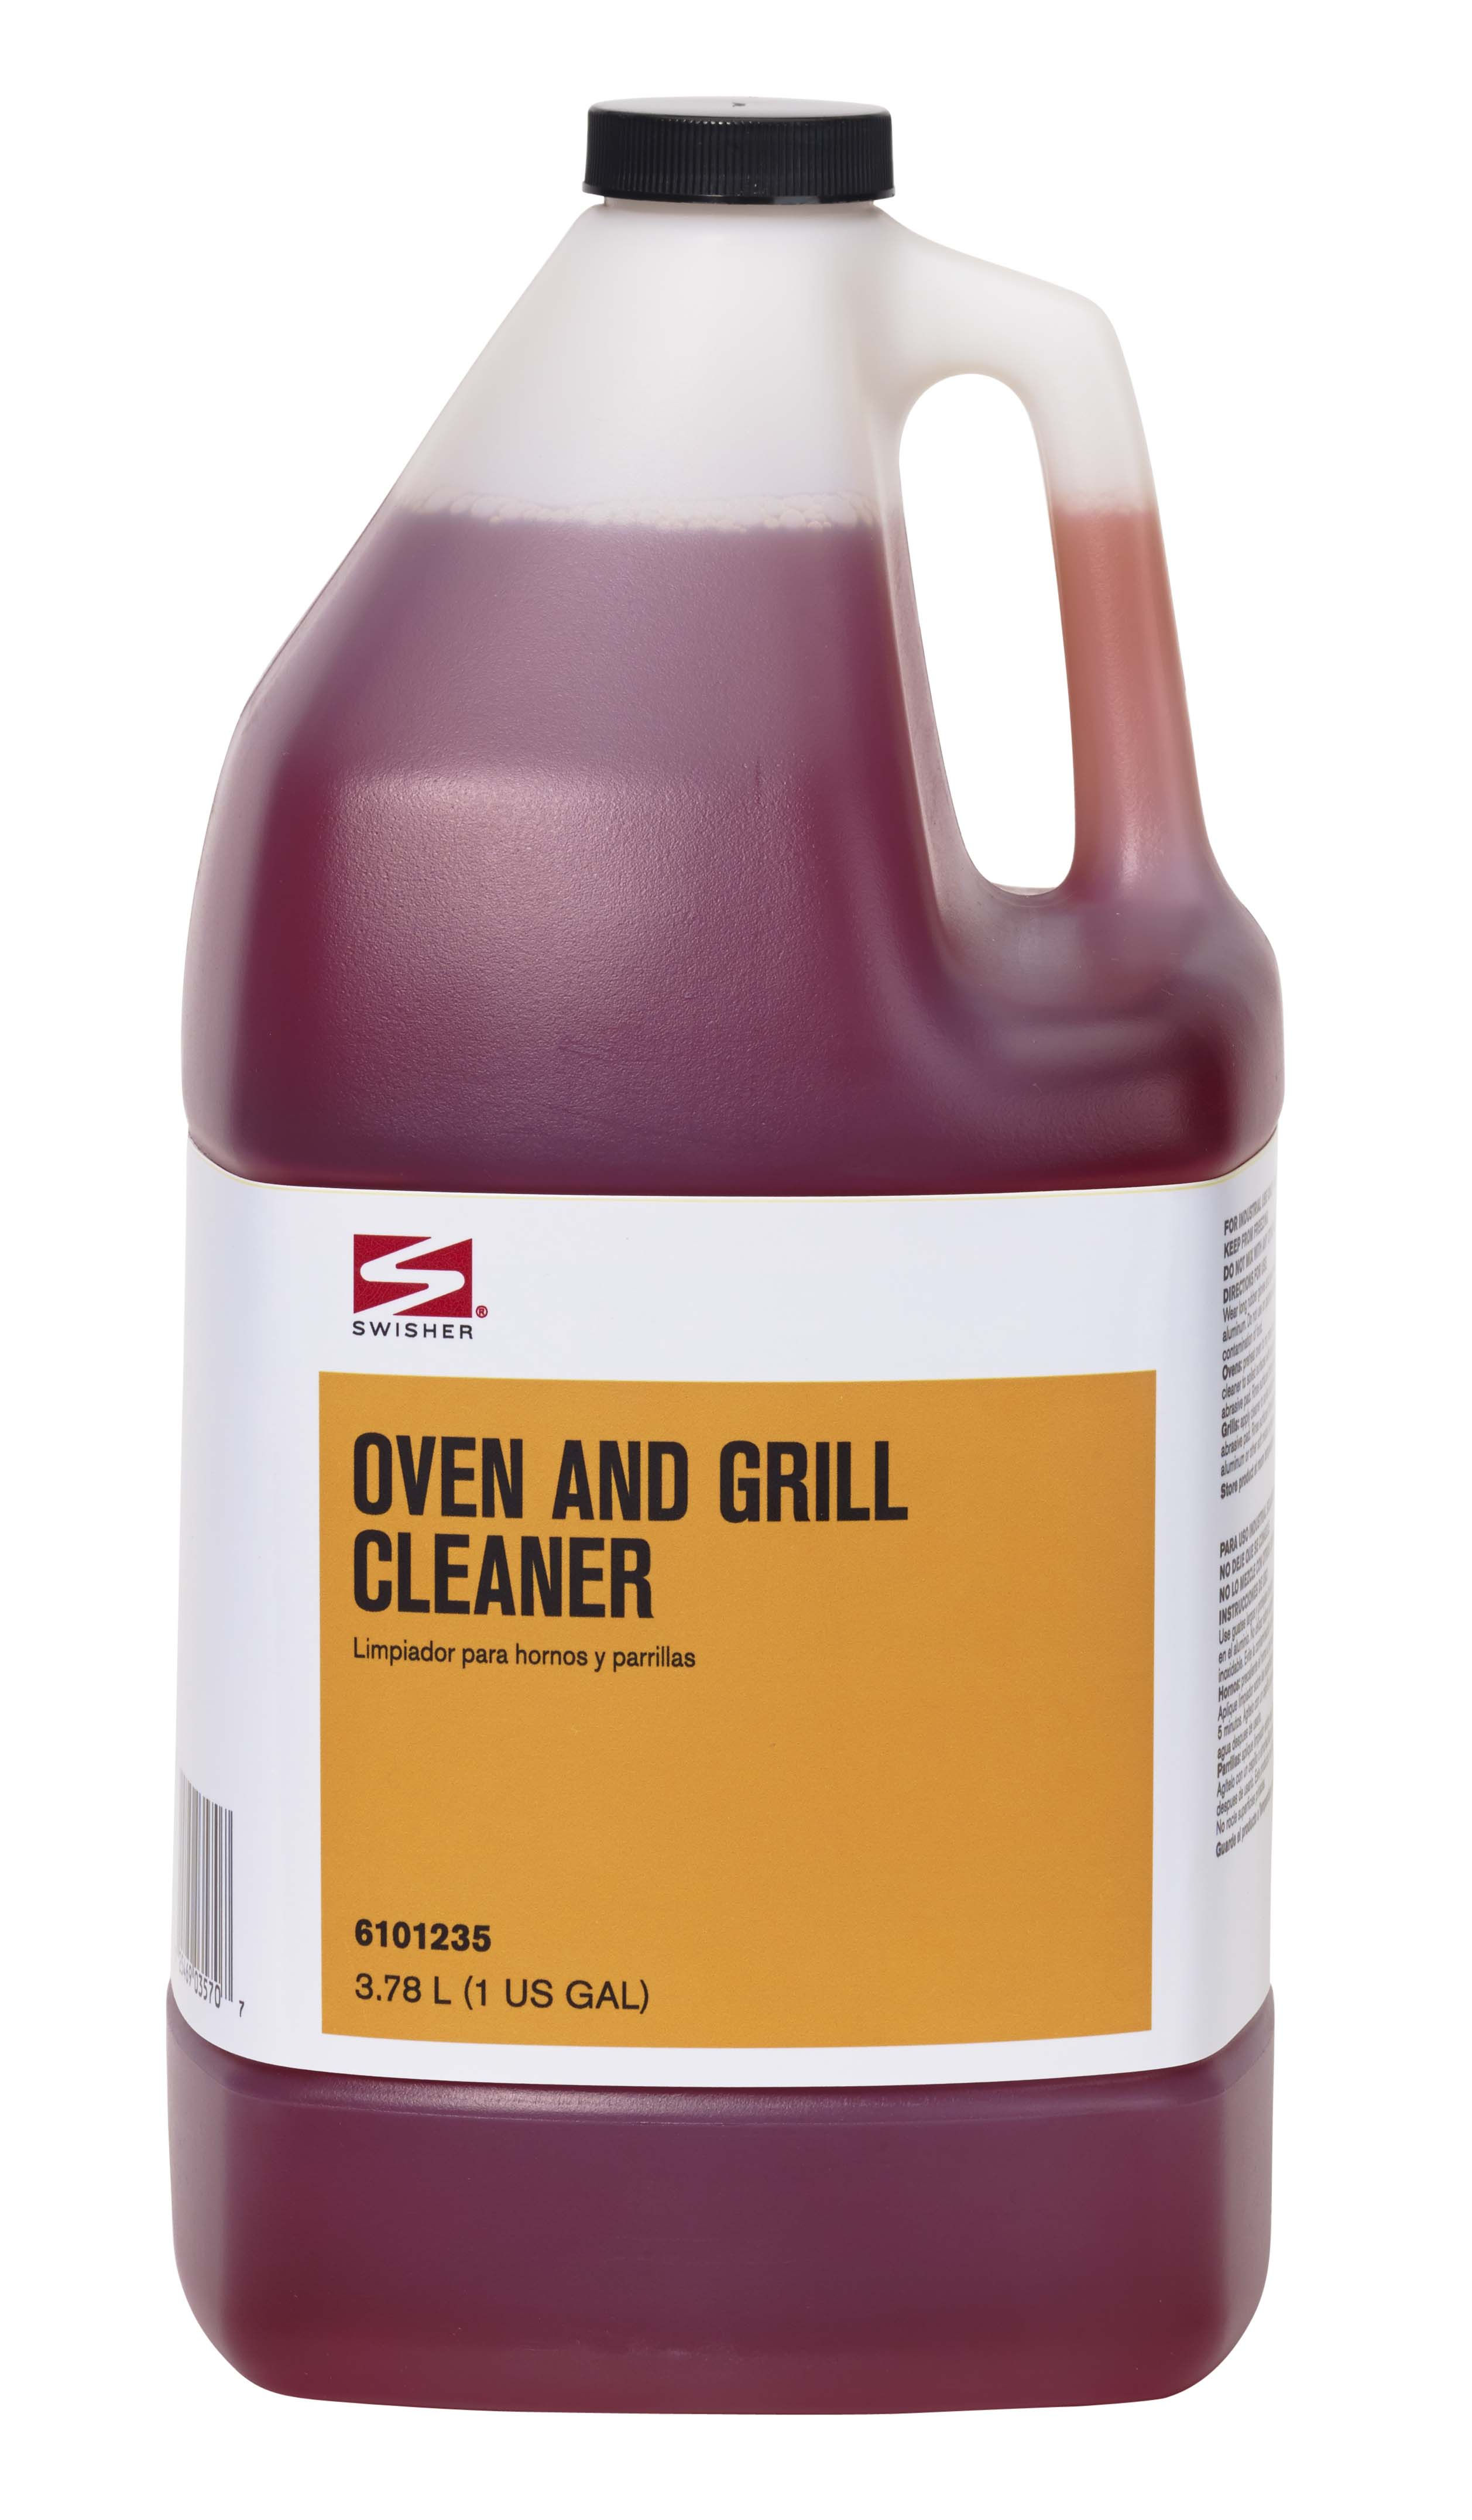 Swisher Oven and Grill Cleaner